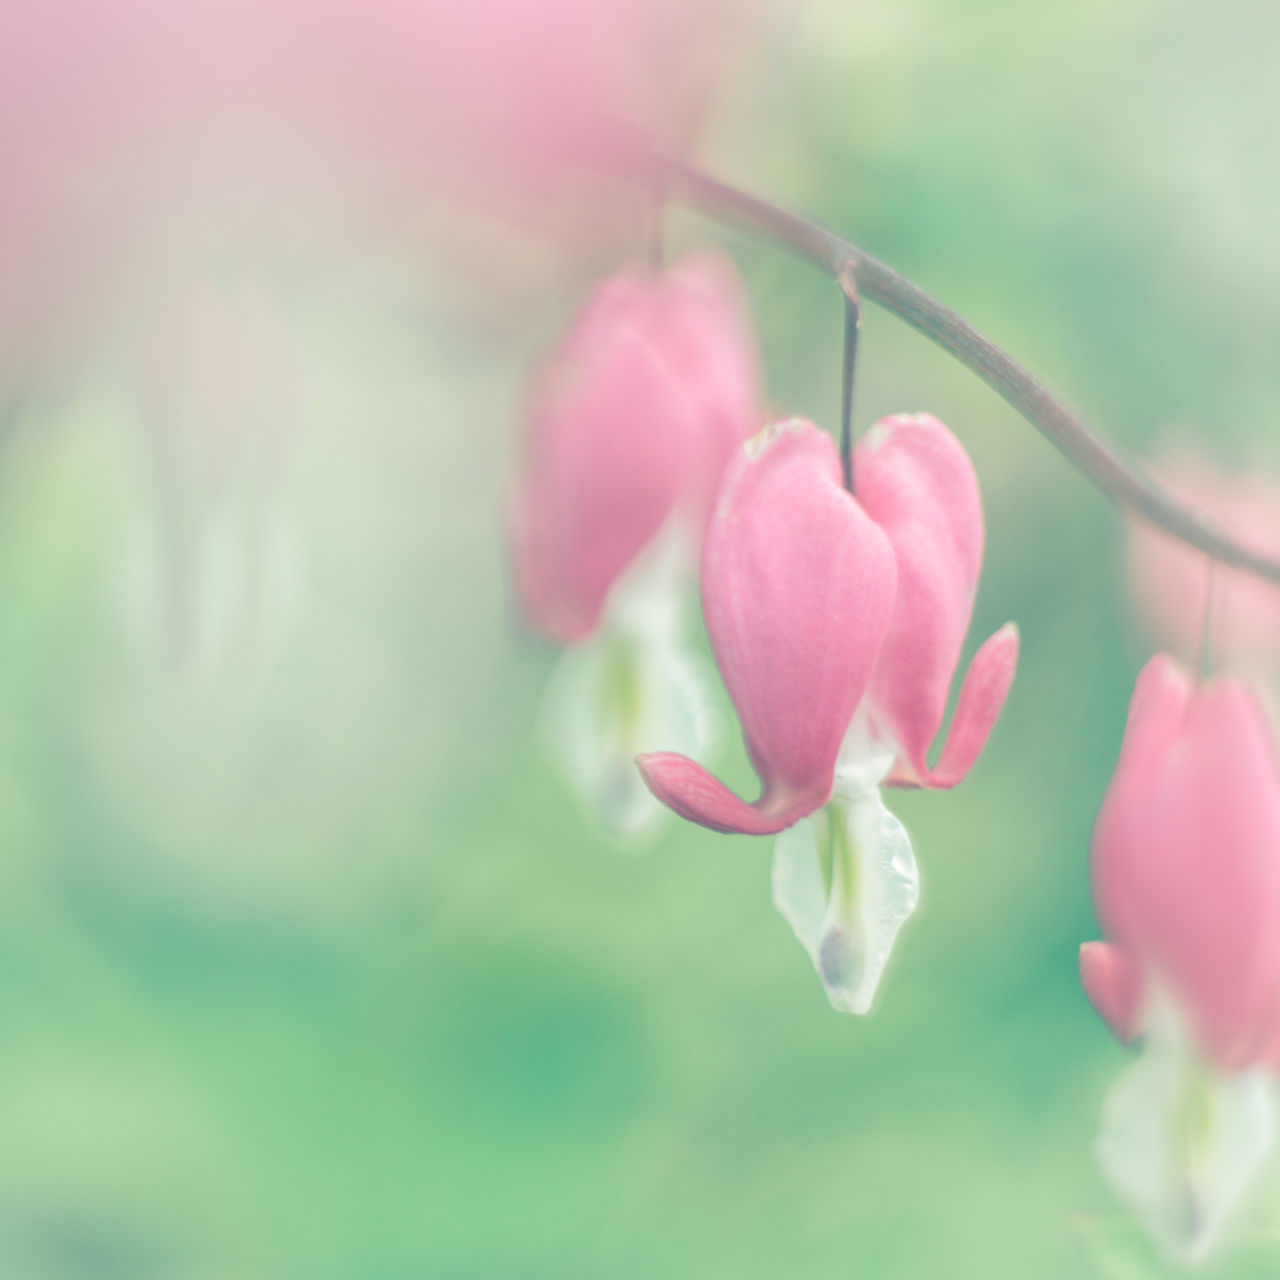 Beauty In Nature Blooming Close-up Day Delicate Flower Fragility Freshness Growth Heart Nature No People Outdoors Pastel Pastel Colors Petal Plant